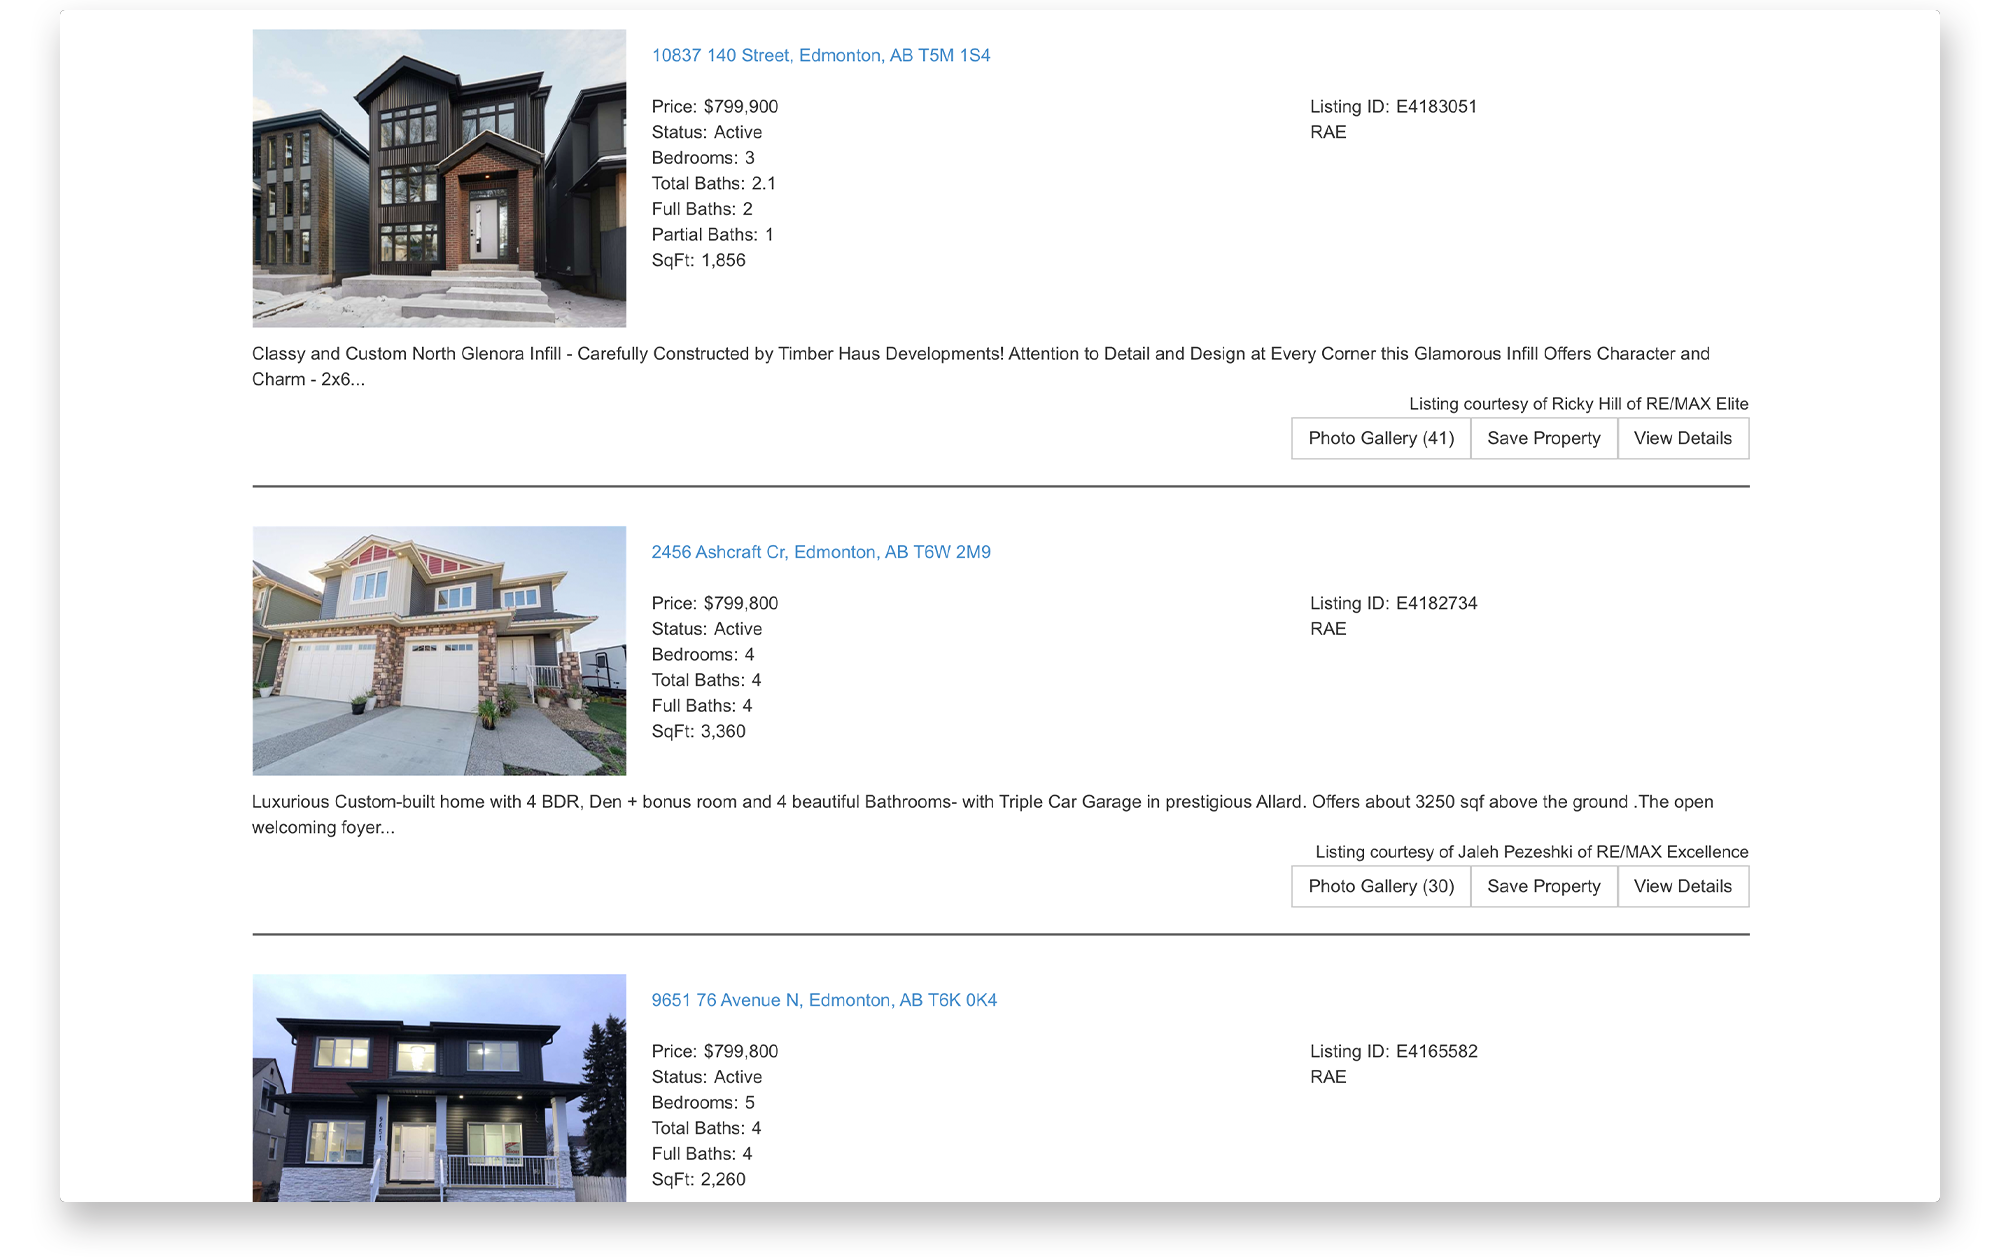 Search results page for Alanna Dawley's real estate website.